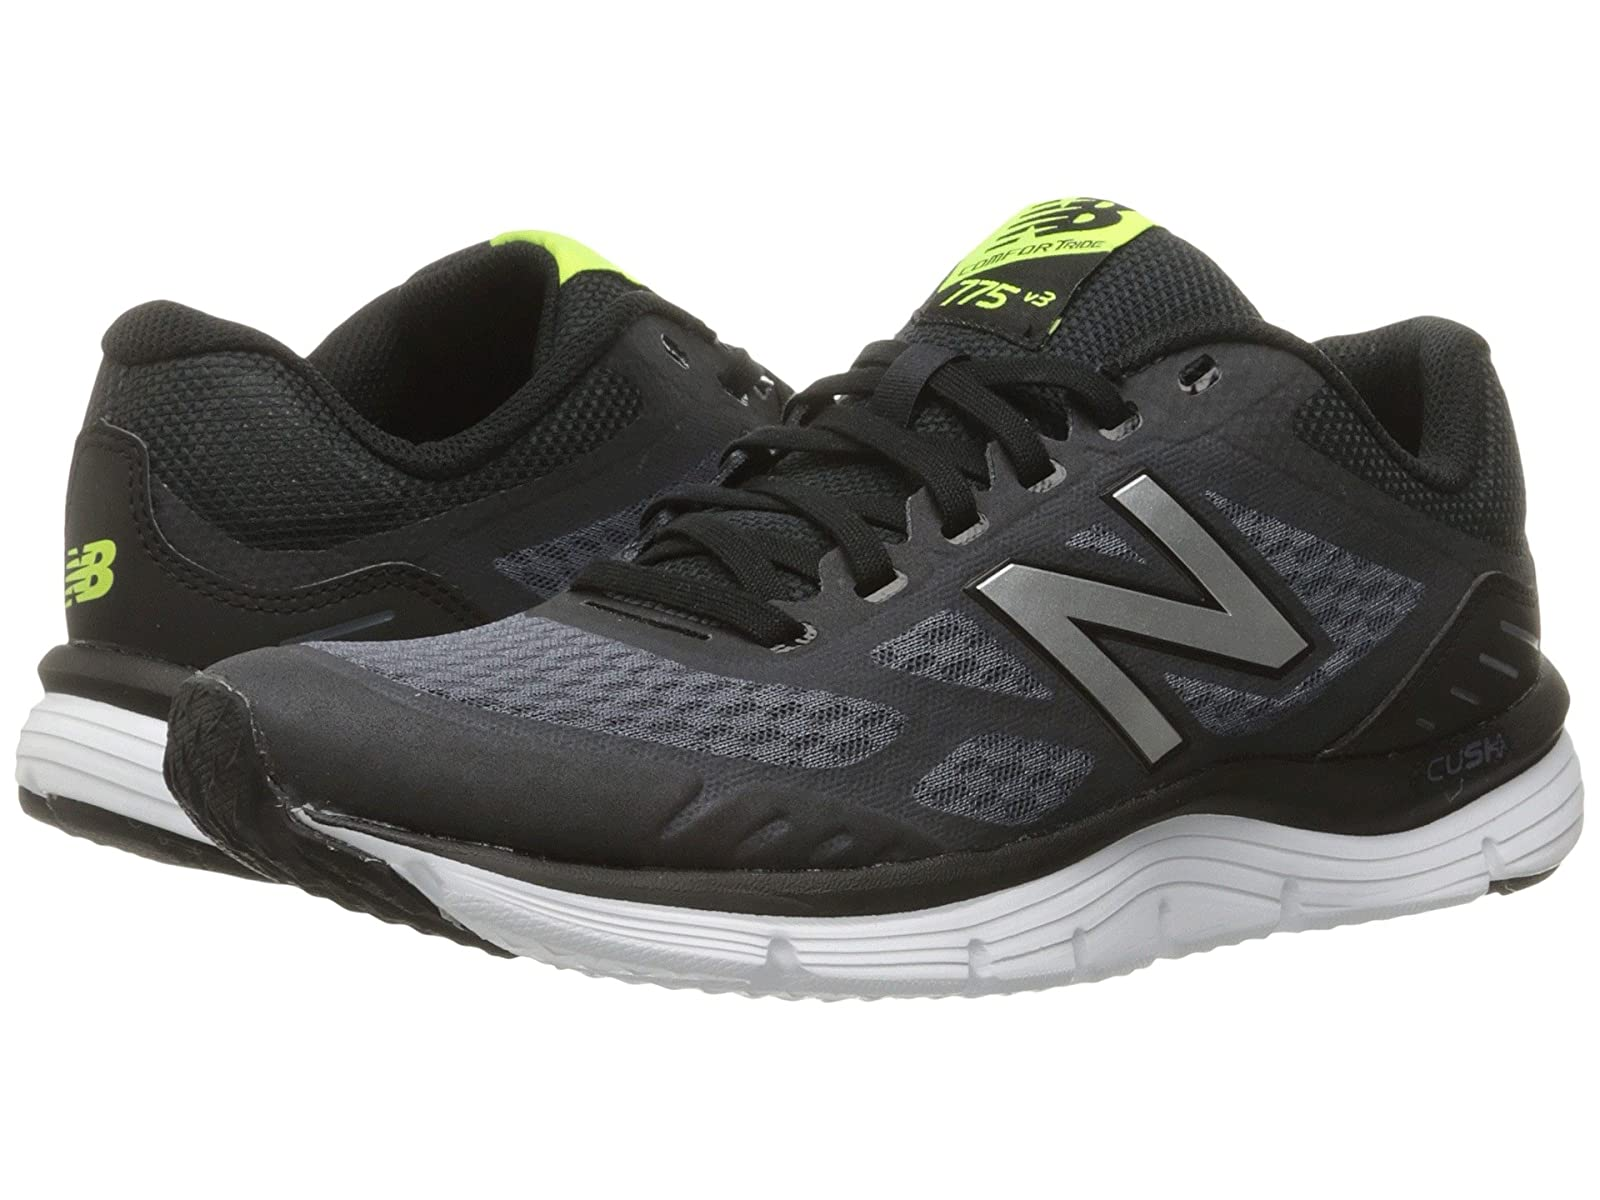 New Balance 775v3Cheap and distinctive eye-catching shoes